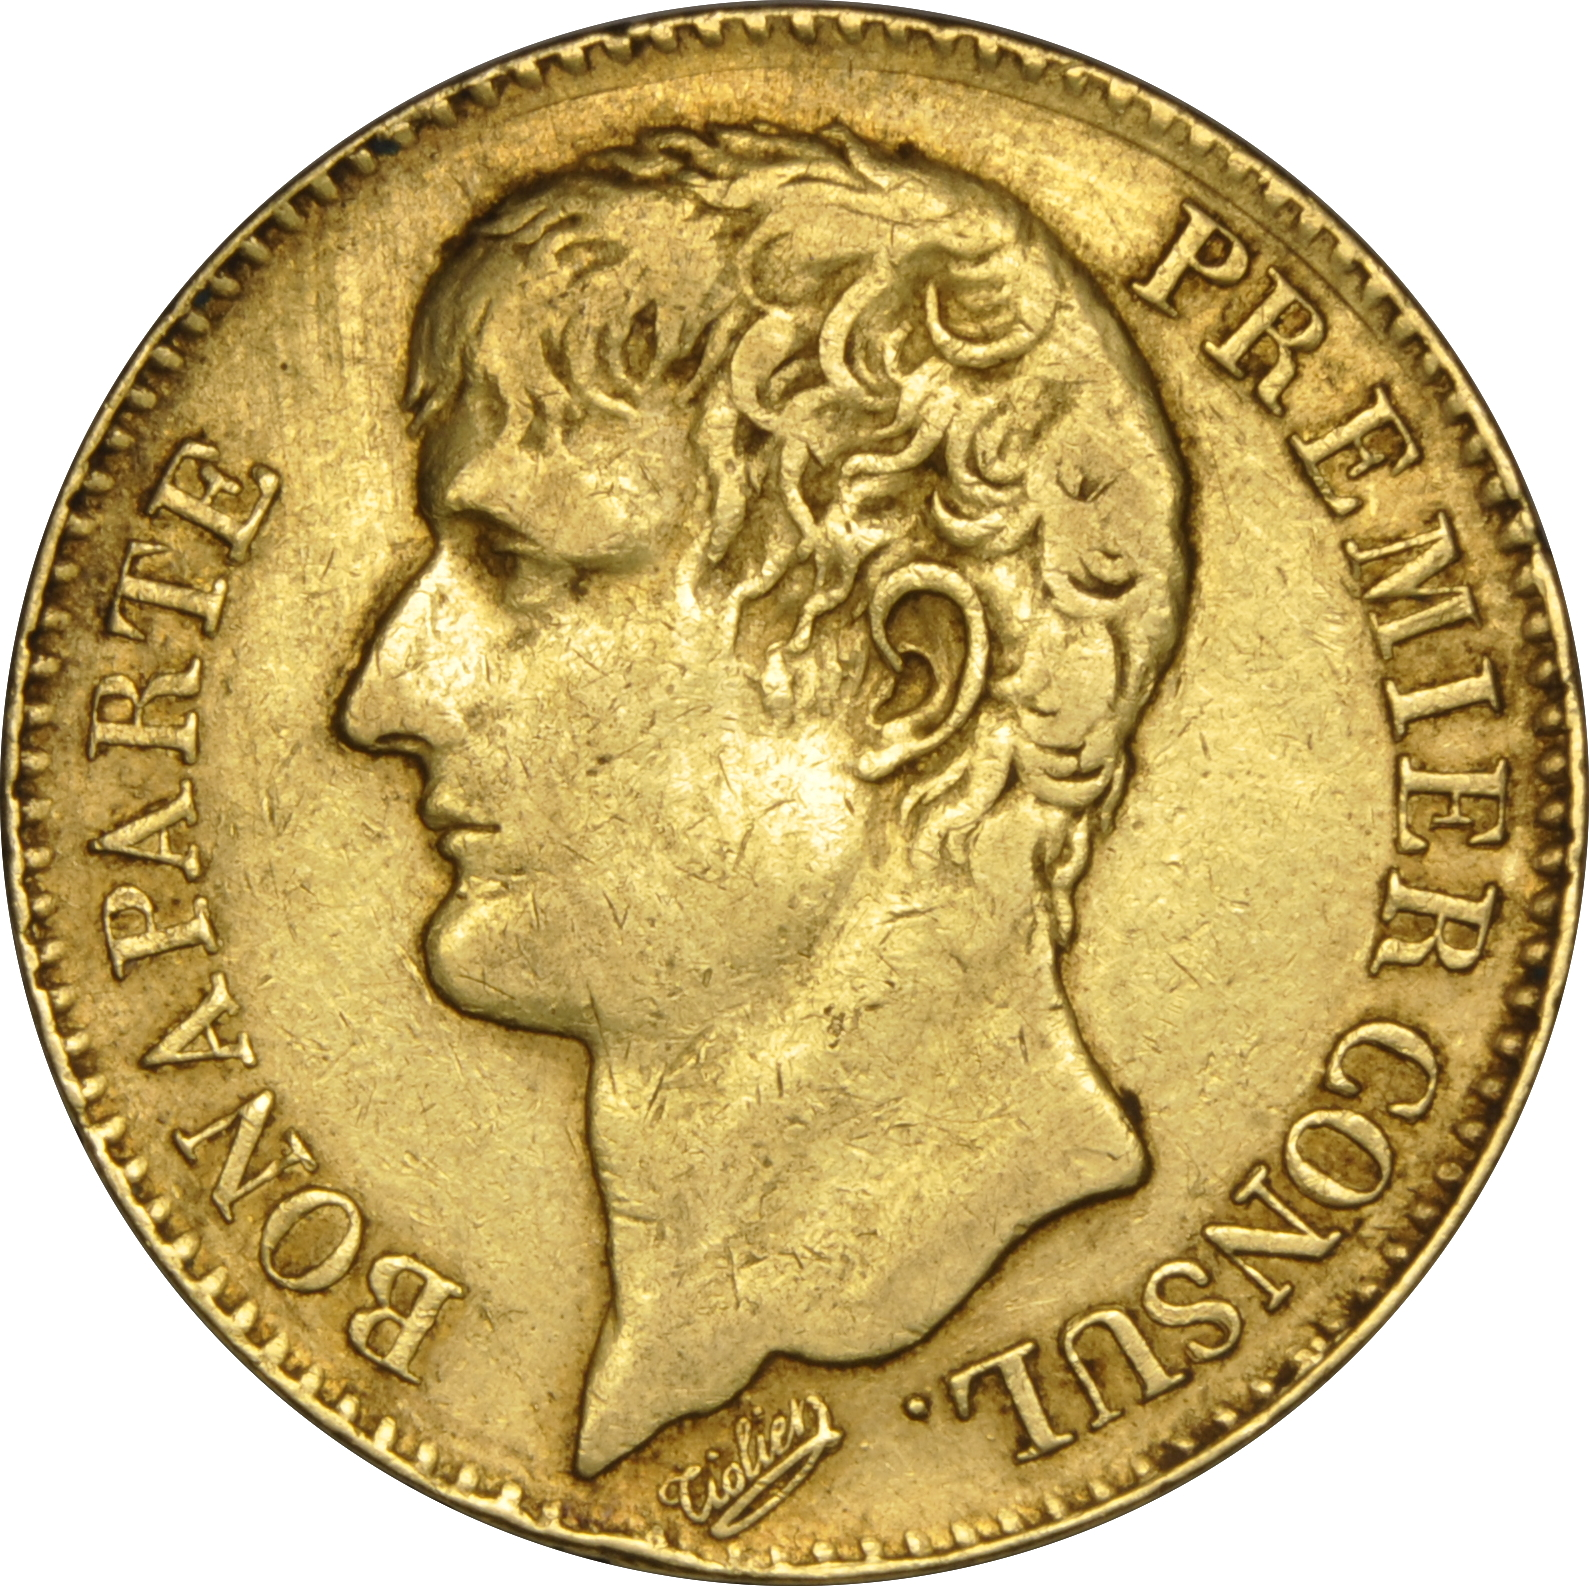 40 French Francs Napoleon First Consul Bare Head 1802 1804 An 11 12 670